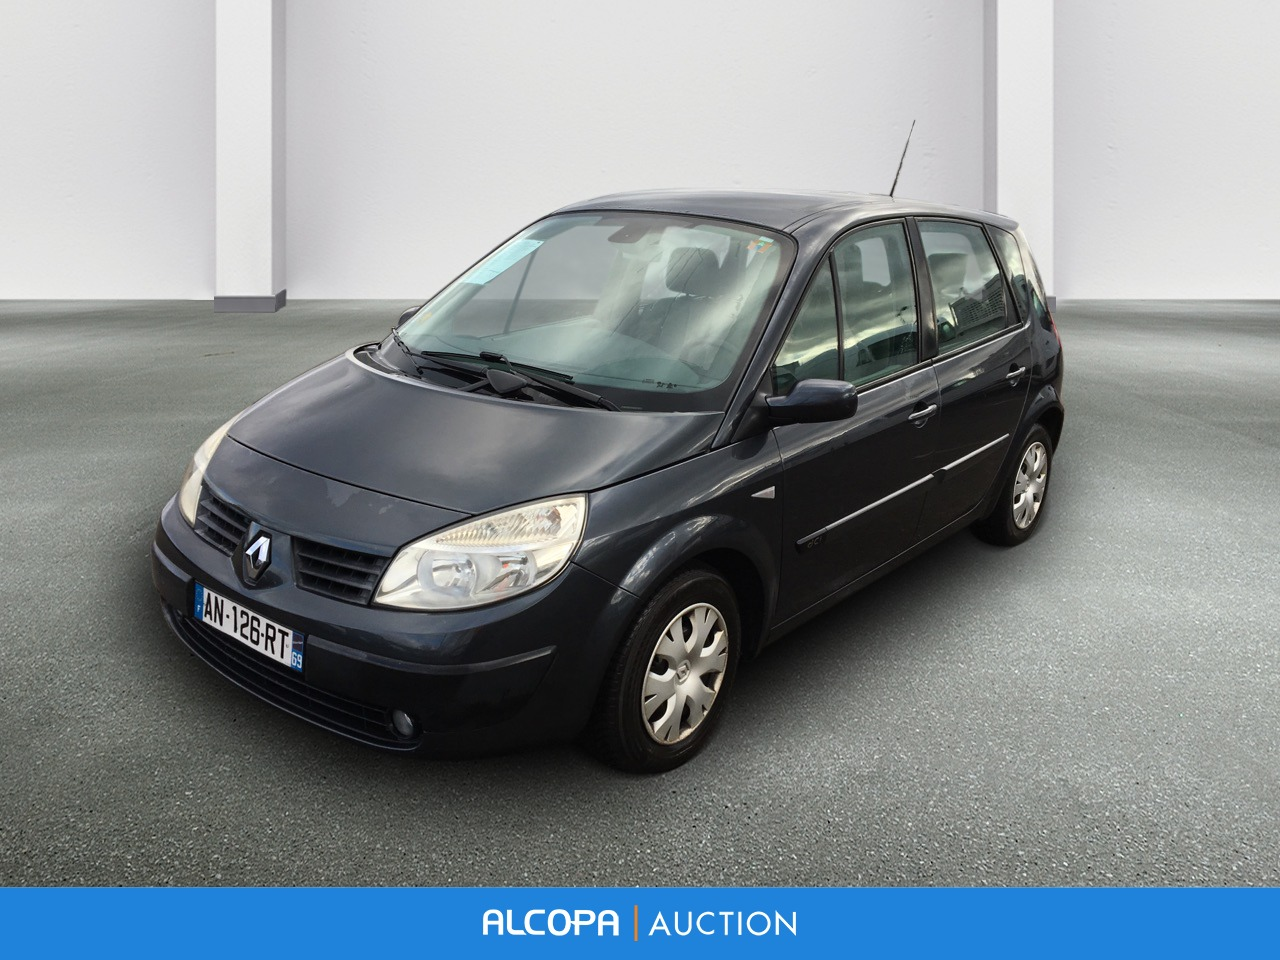 renault scenic ii scenic 1 5 dci 105 euro 4 pack expression lyon alcopa auction. Black Bedroom Furniture Sets. Home Design Ideas